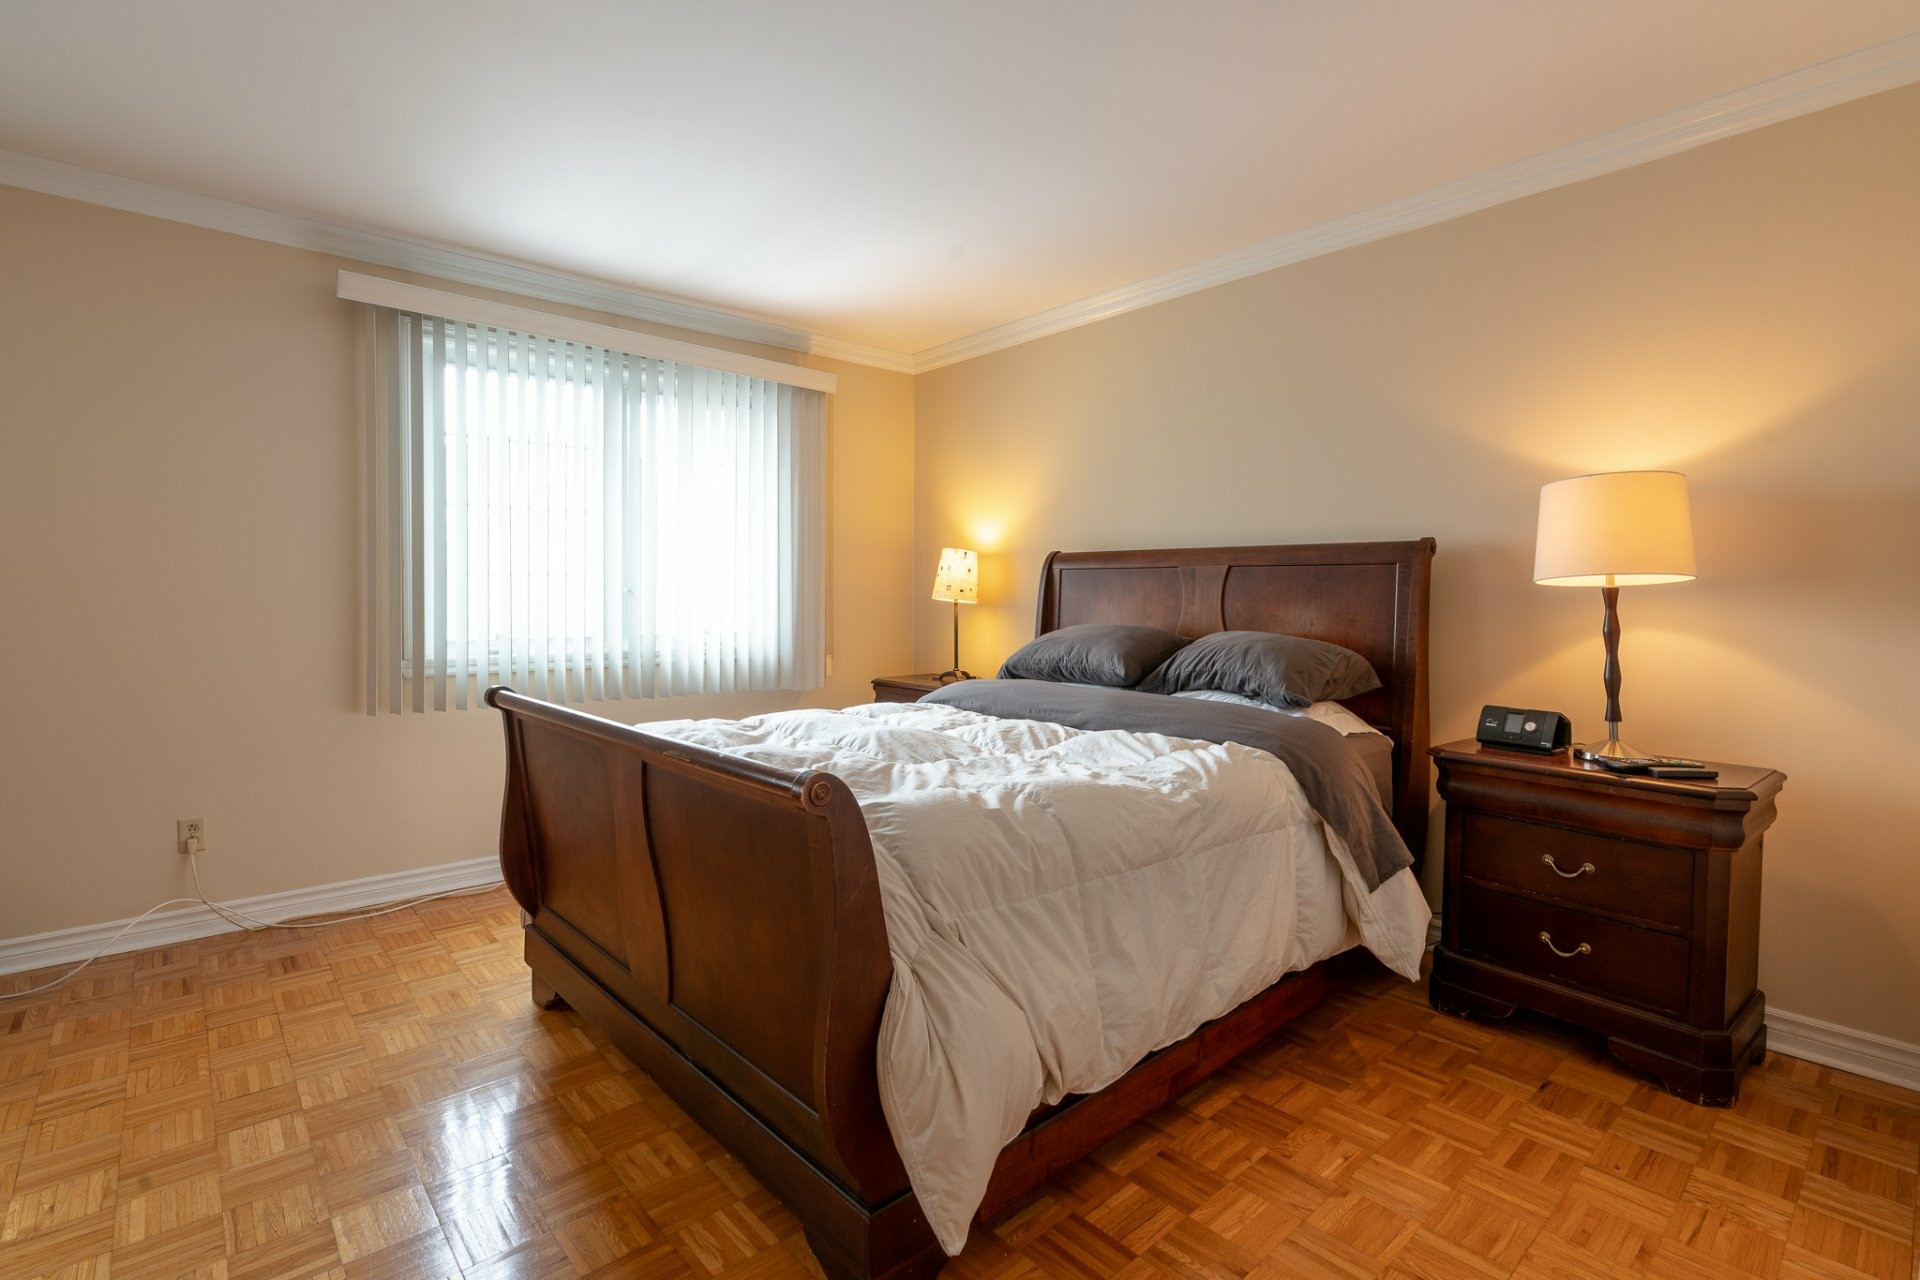 image 9 - House For sale Pointe-Claire - 8 rooms